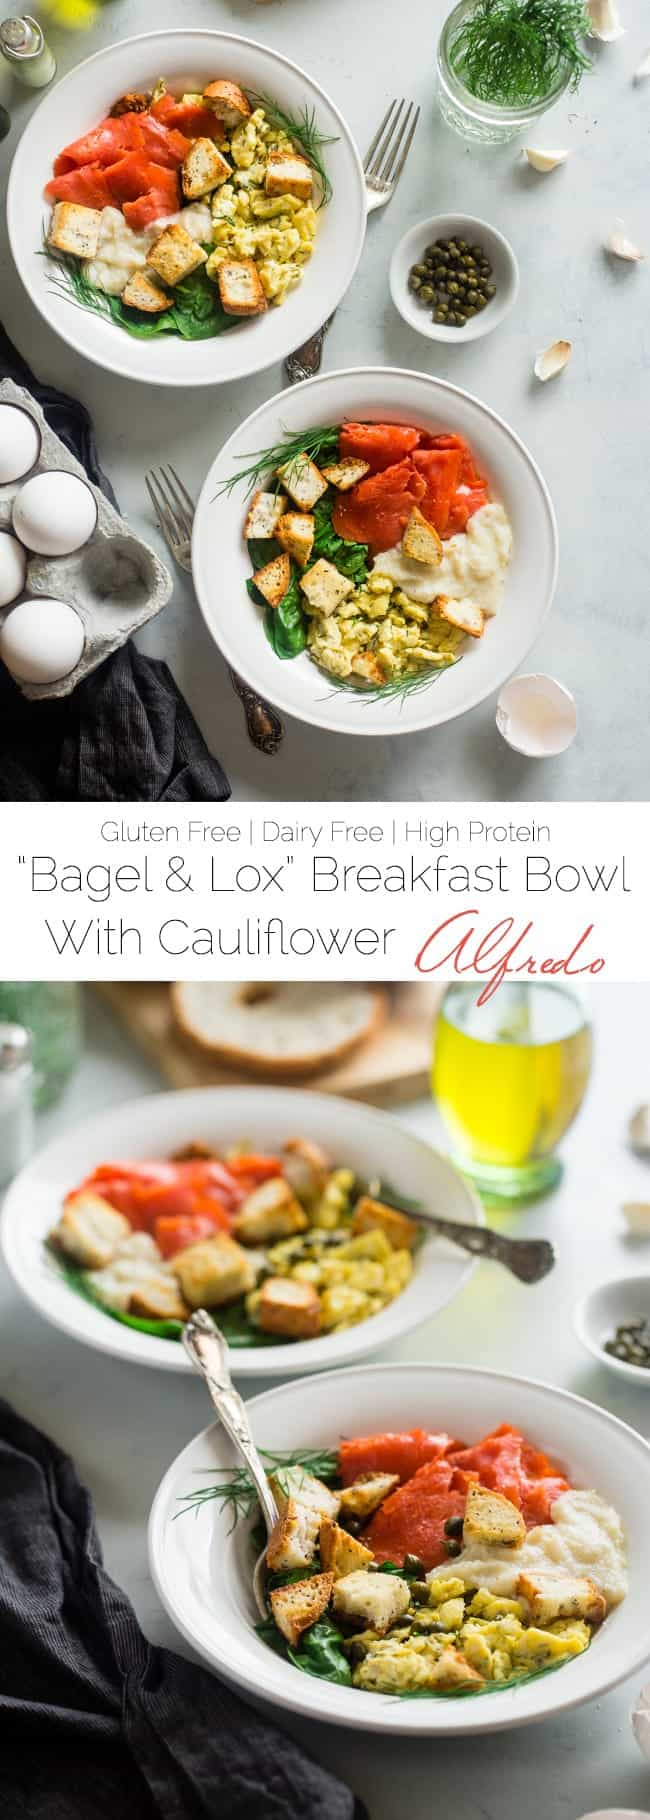 "Gluten Free Cauliflower Alfredo ""Lox Bagel"" Breakfast Bowls - These bowls are a spin on the classic lox bagel, and use cauliflower Alfredo instead of cream cheese to keep them dairy free, healthy and loaded with hidden veggies! 